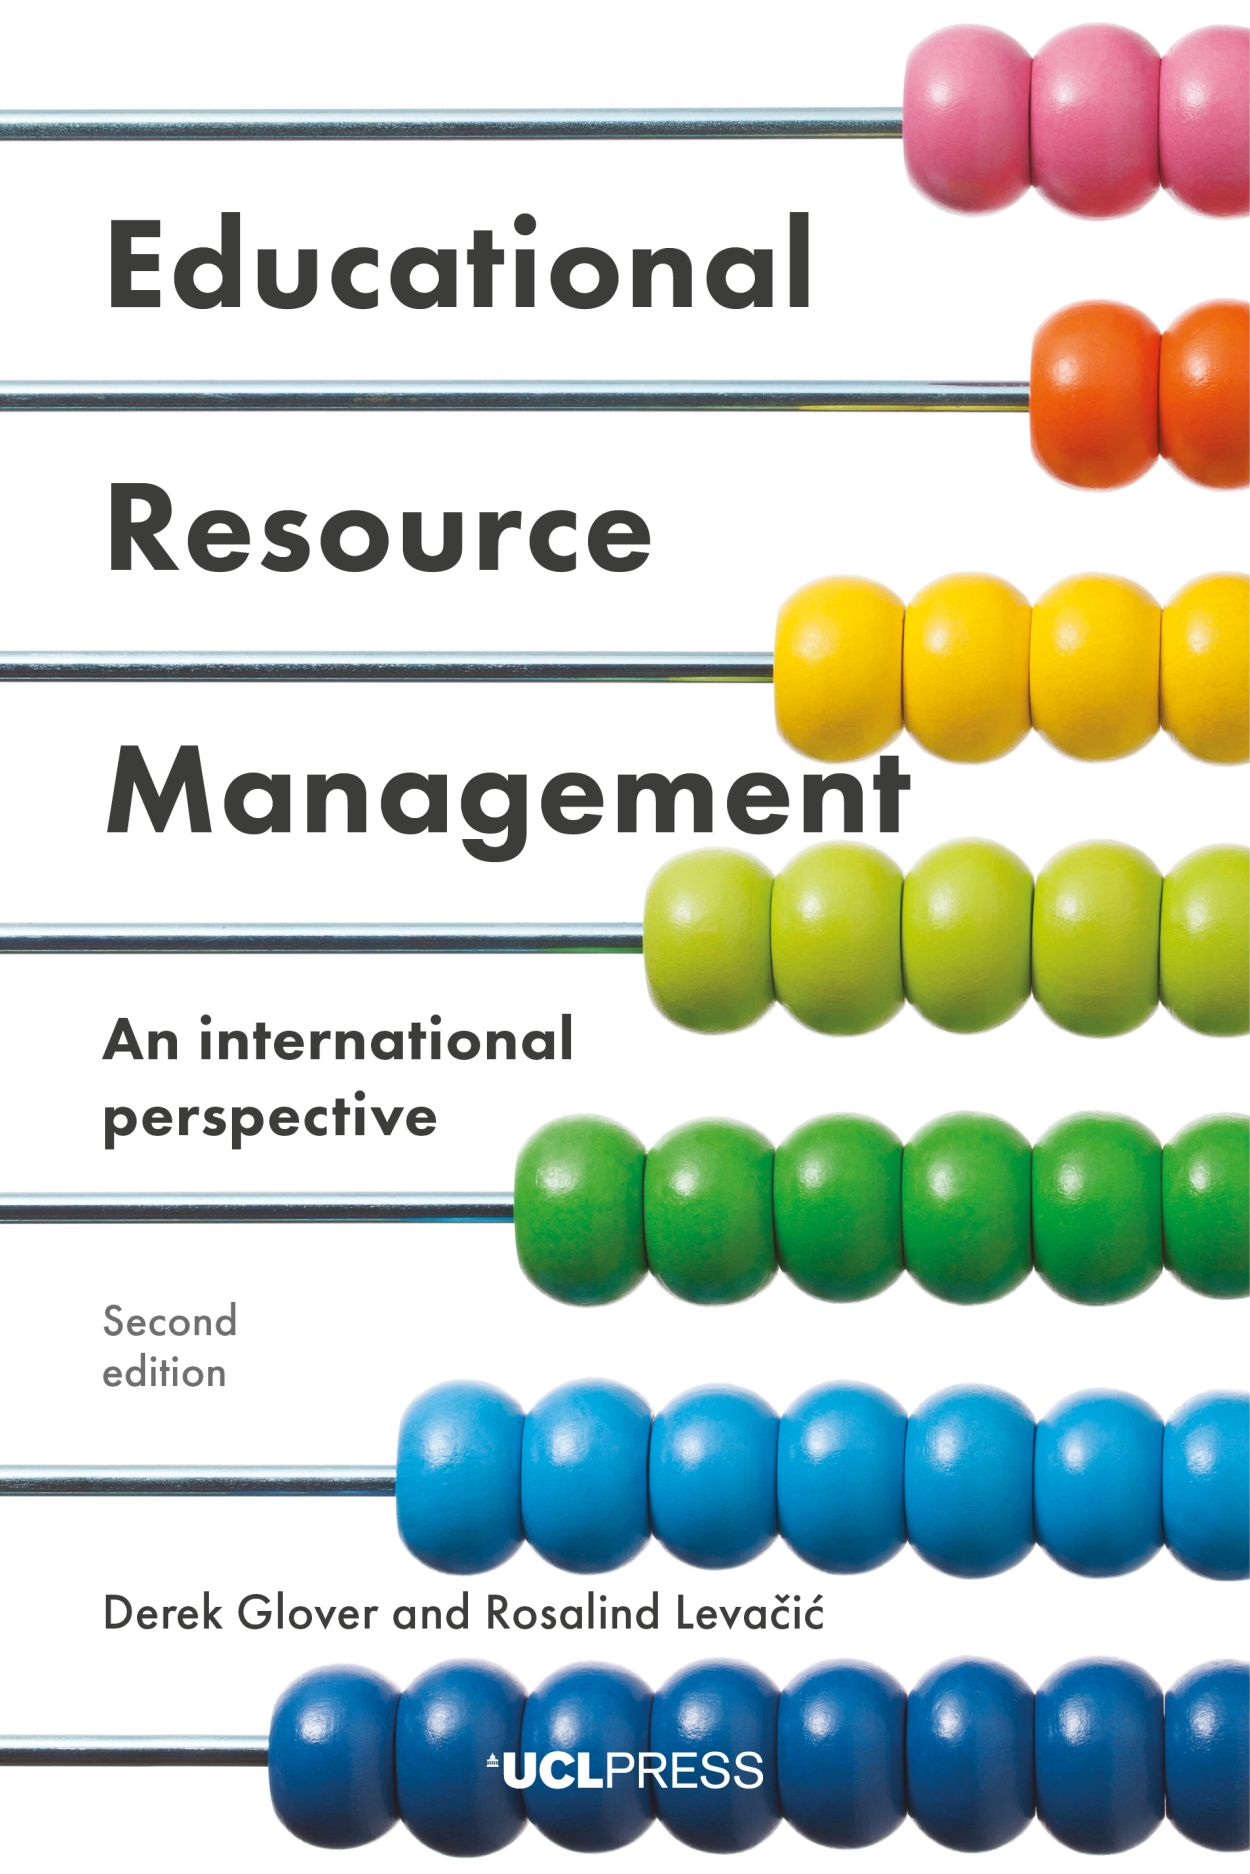 Educational Resource Management: An International Perspective